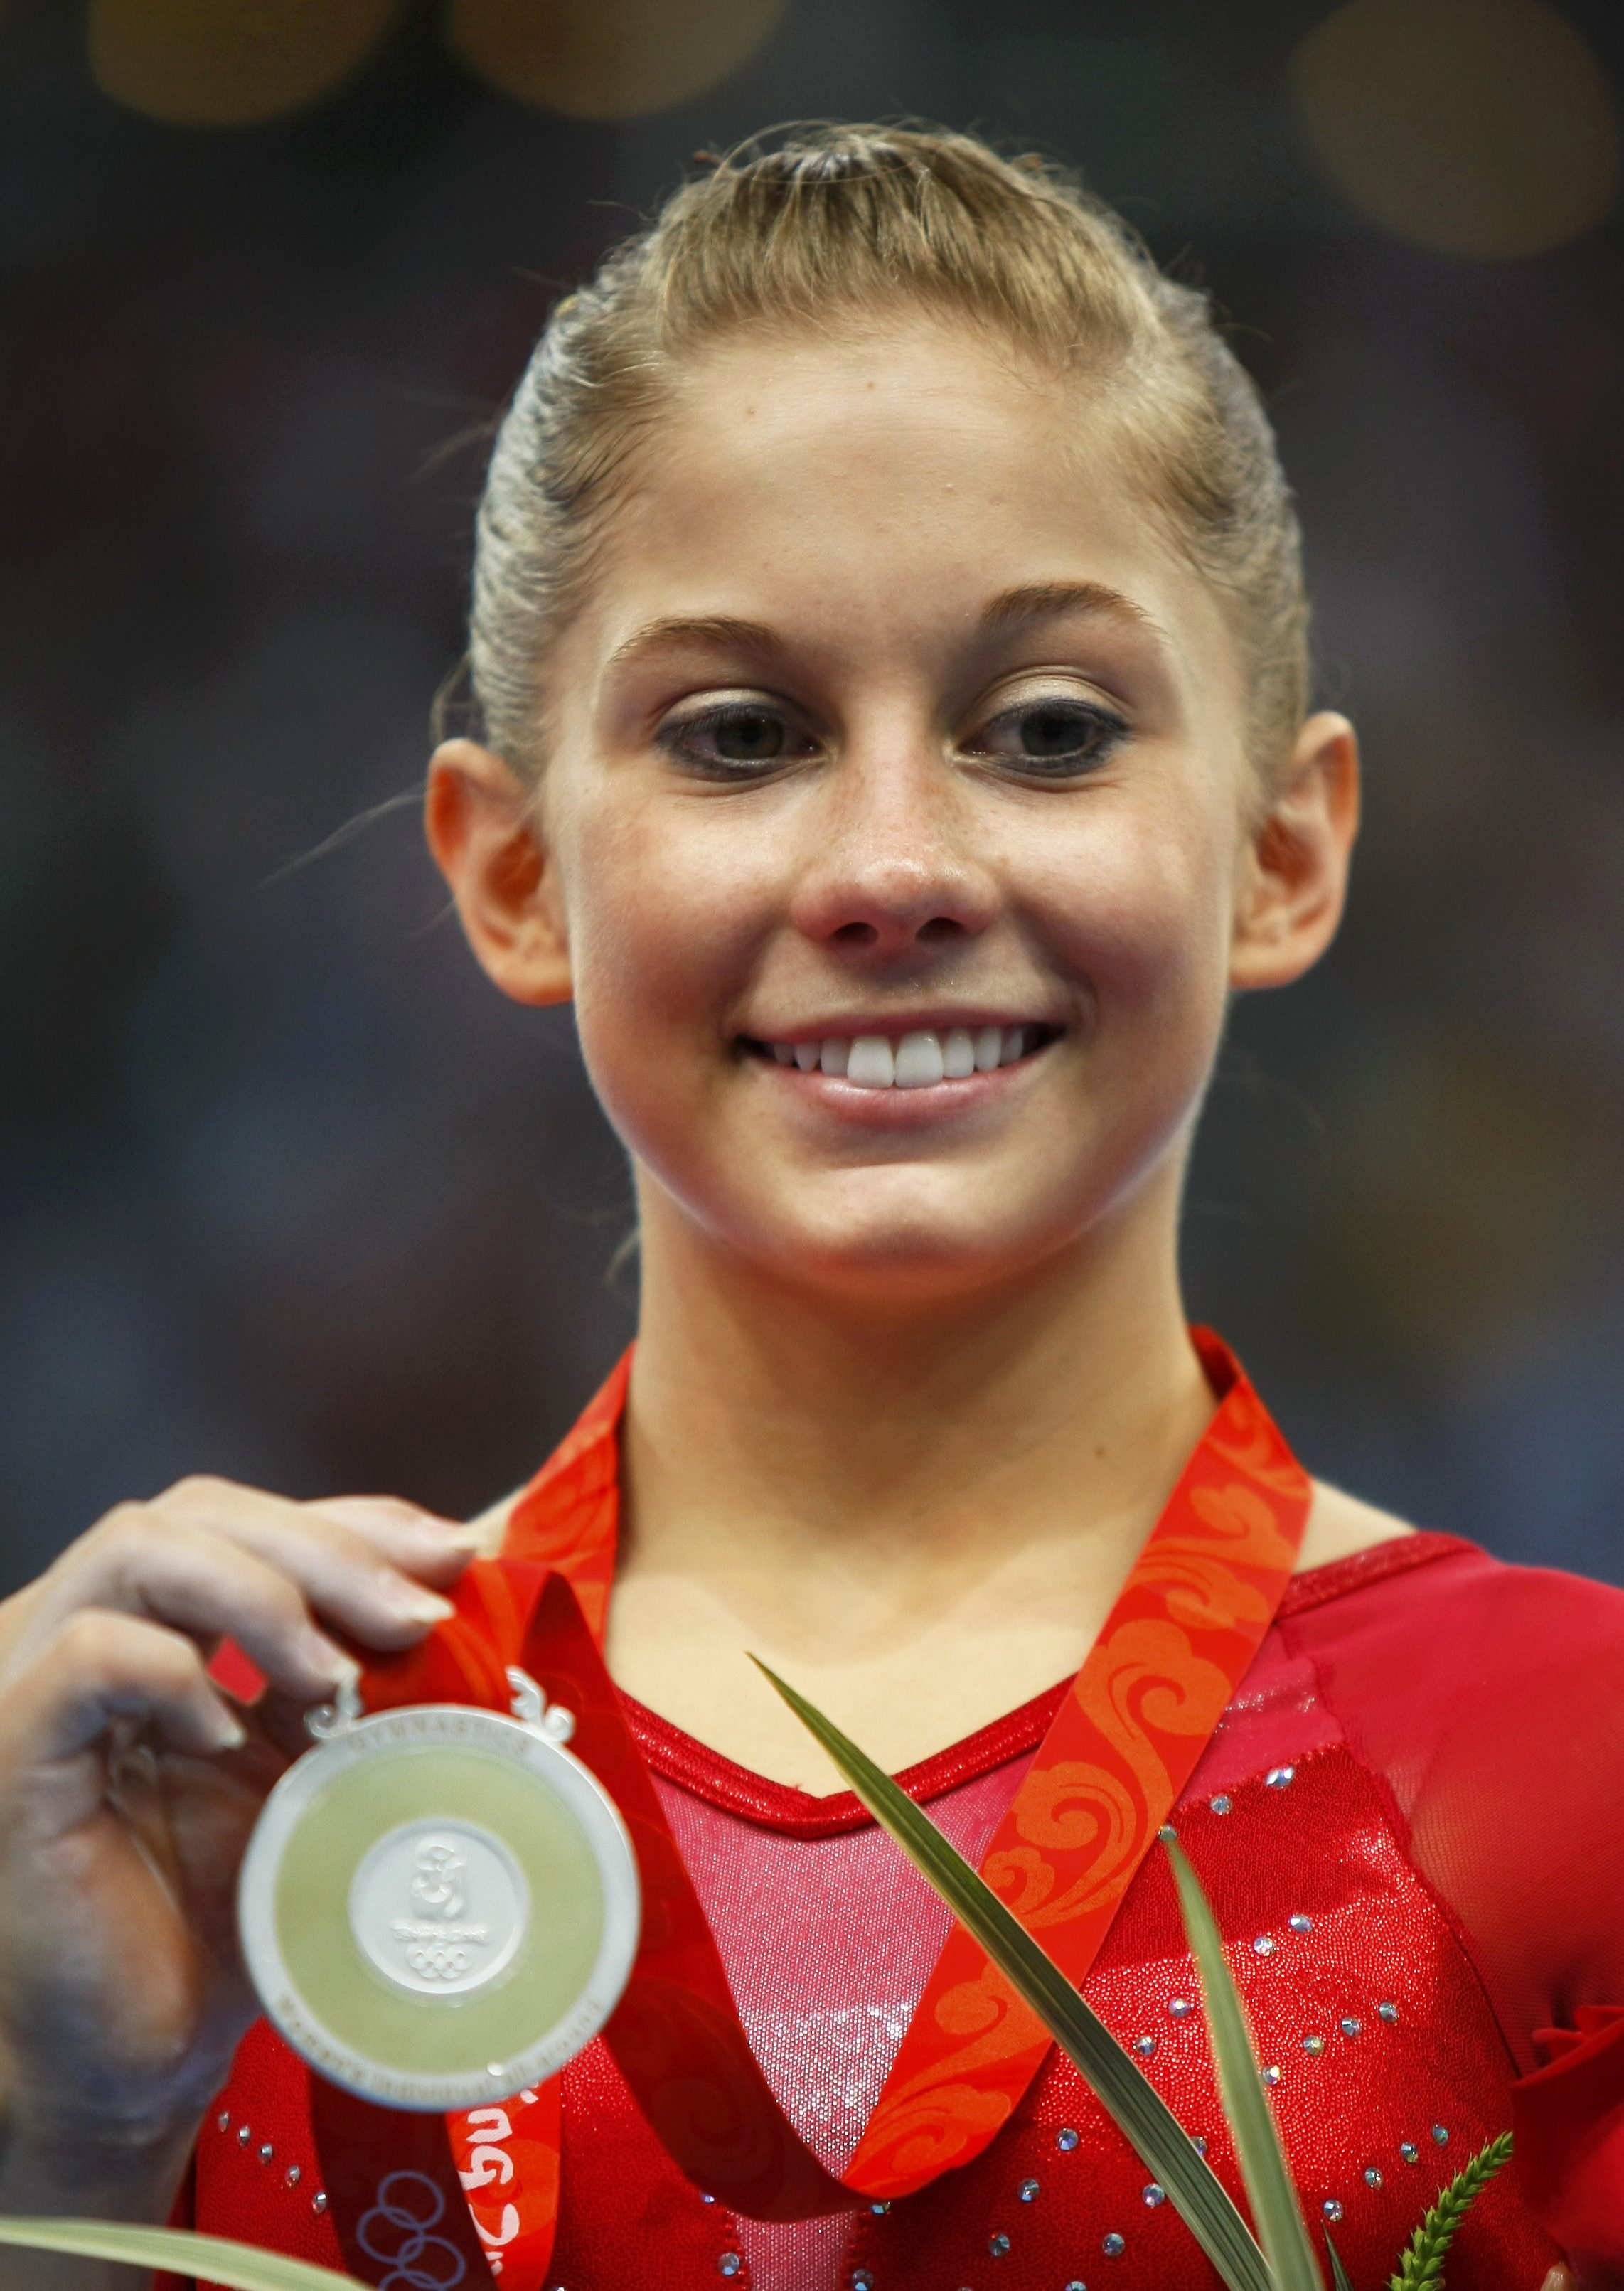 The 25-year old daughter of father Doug Johnson and mother Teri Johnson, 145 cm tall Shawn Johnson in 2017 photo